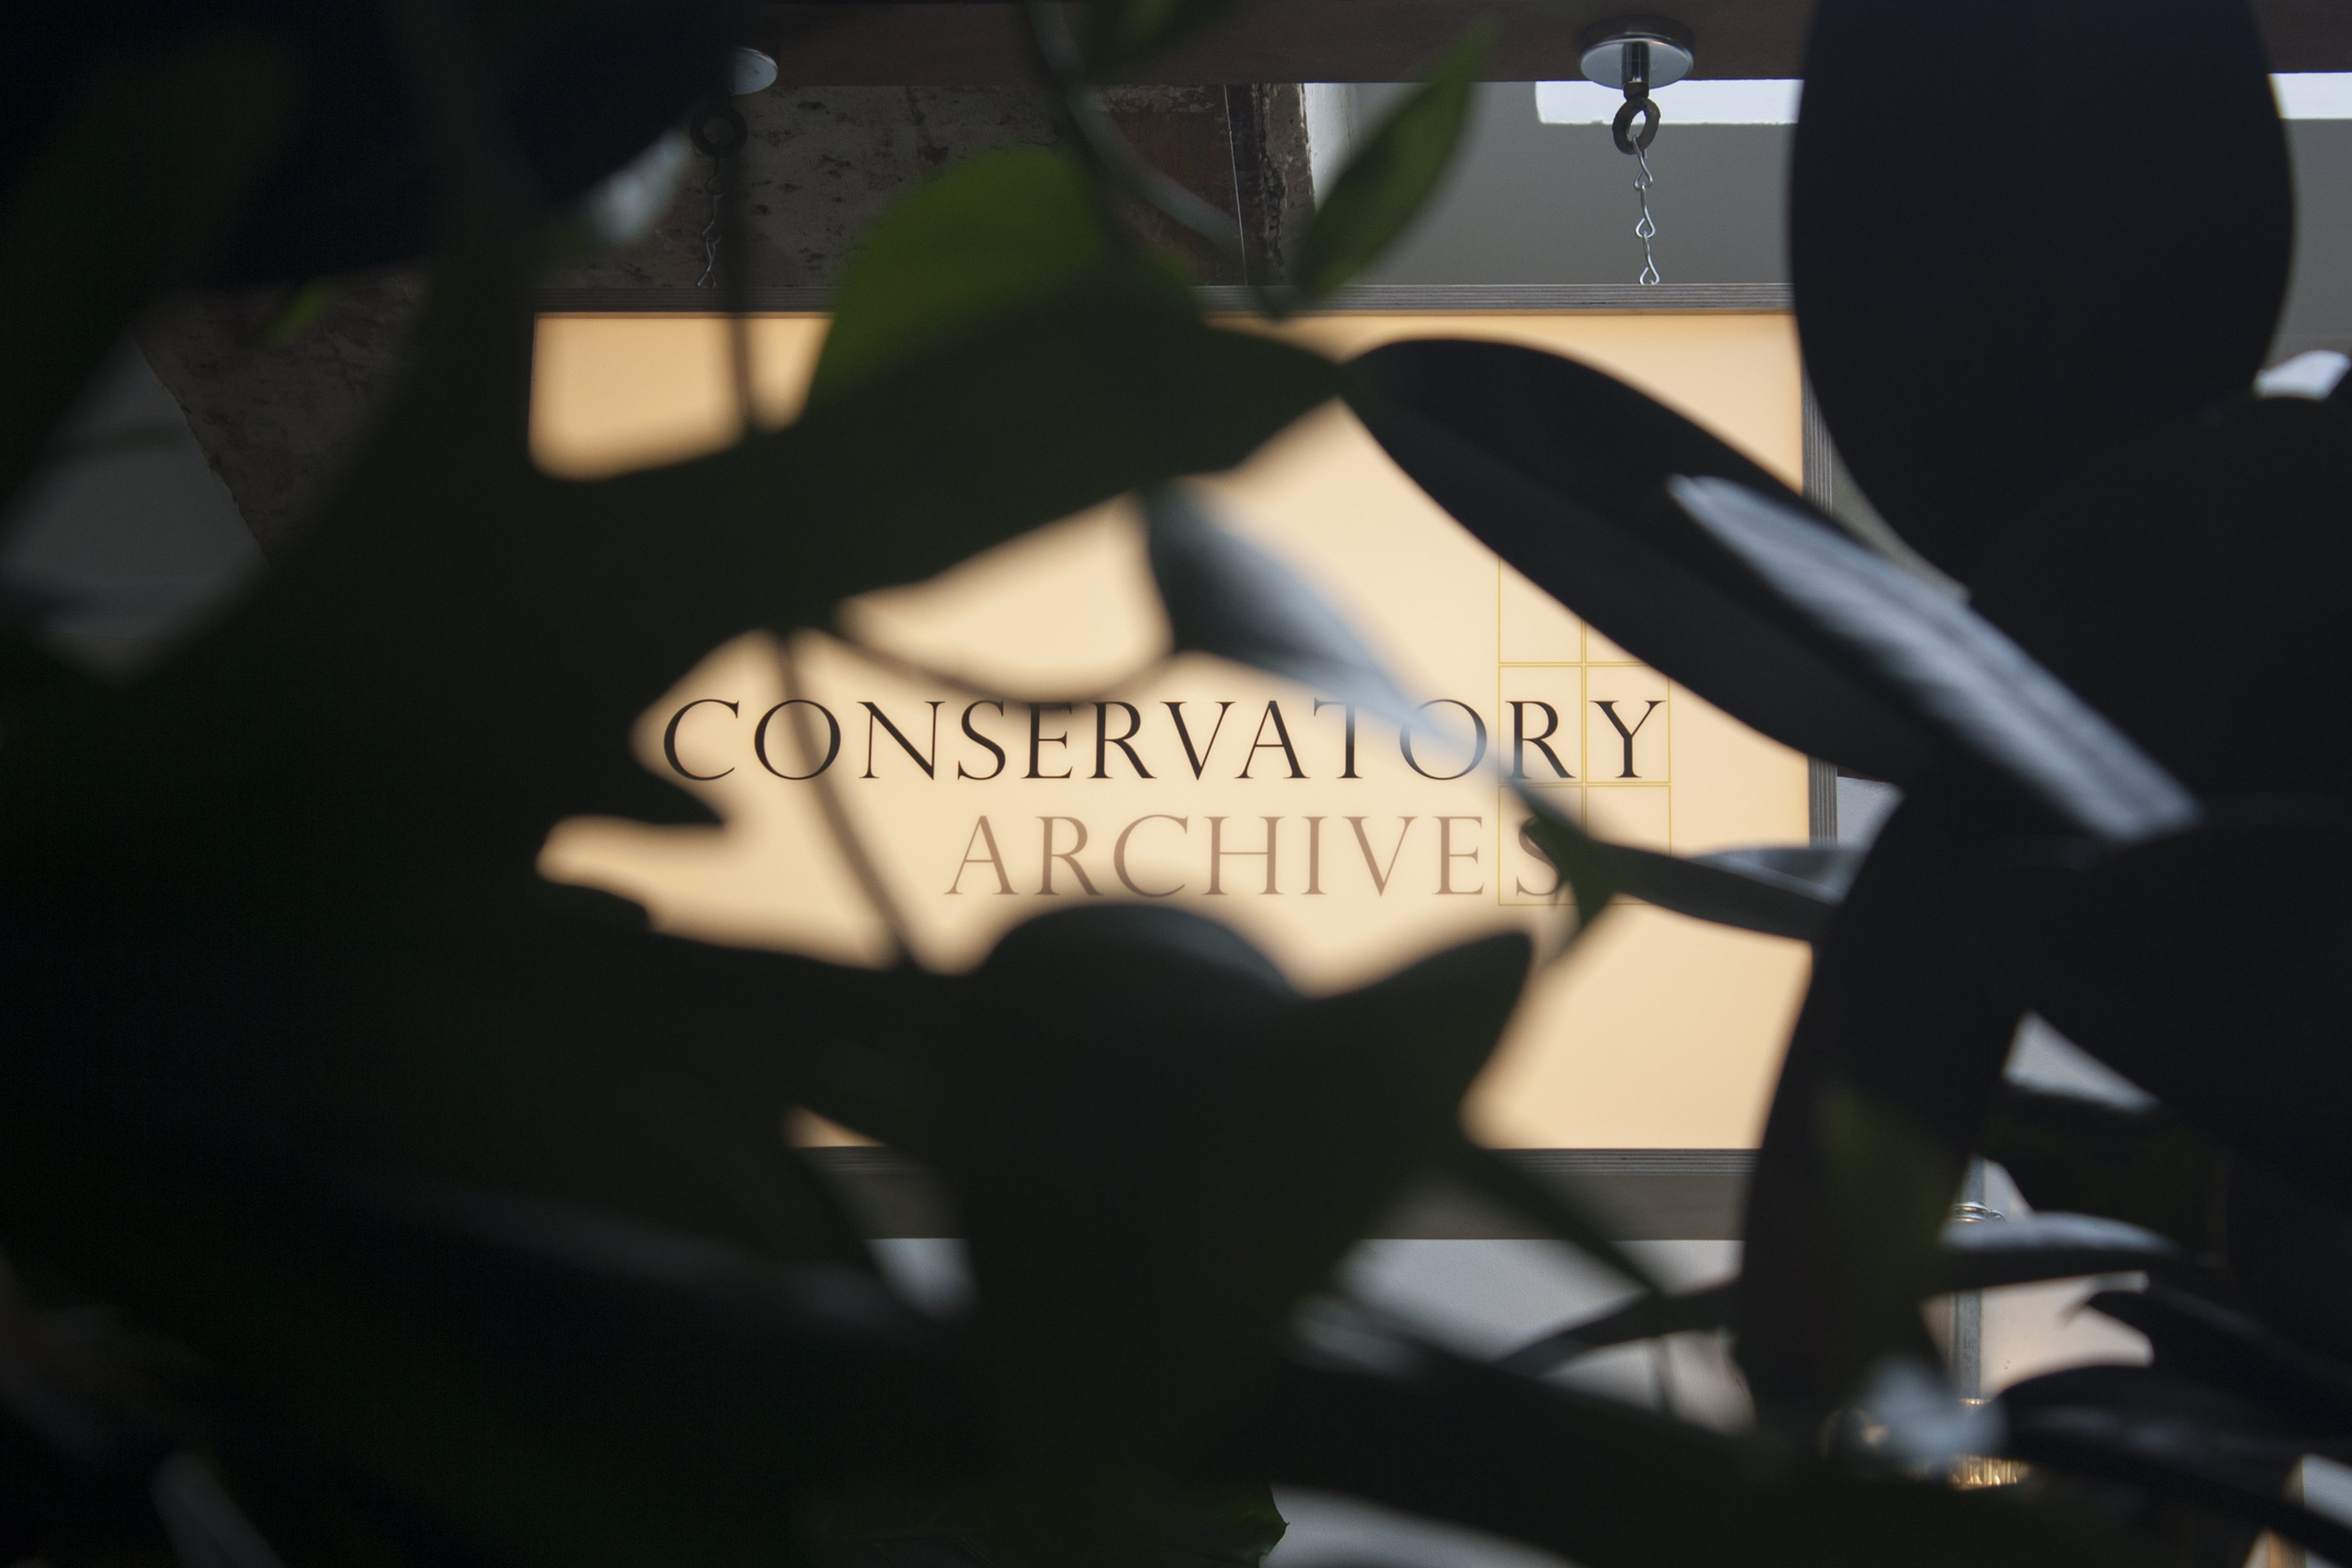 Conservatory Archives sign